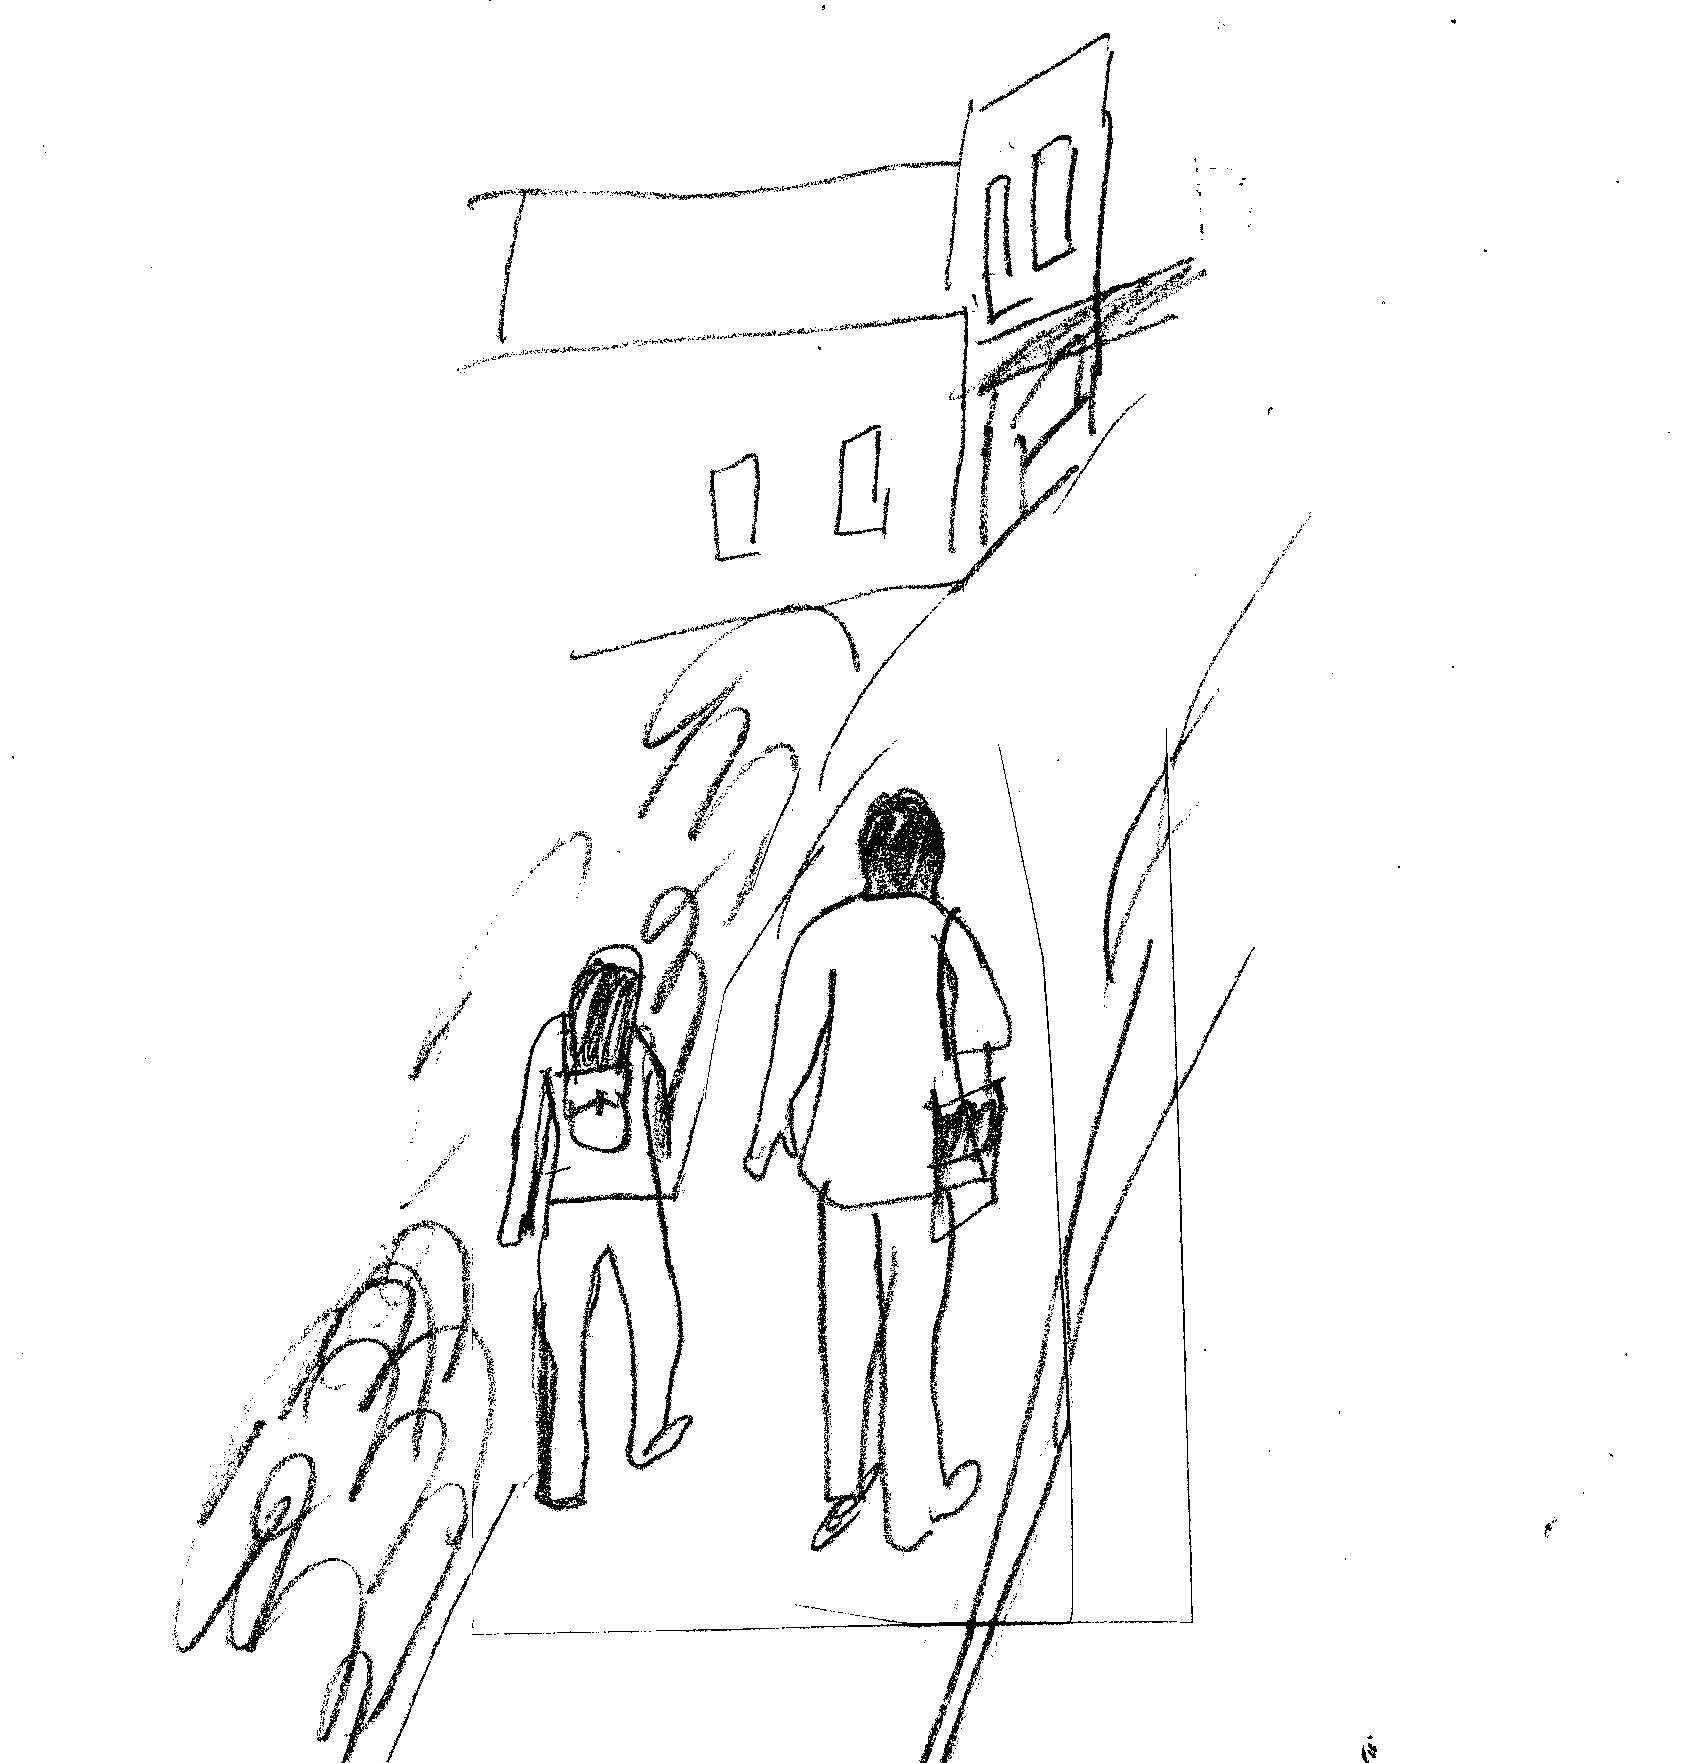 sketch of a woman and a man walking along a sidewalk in a city, seen from behind